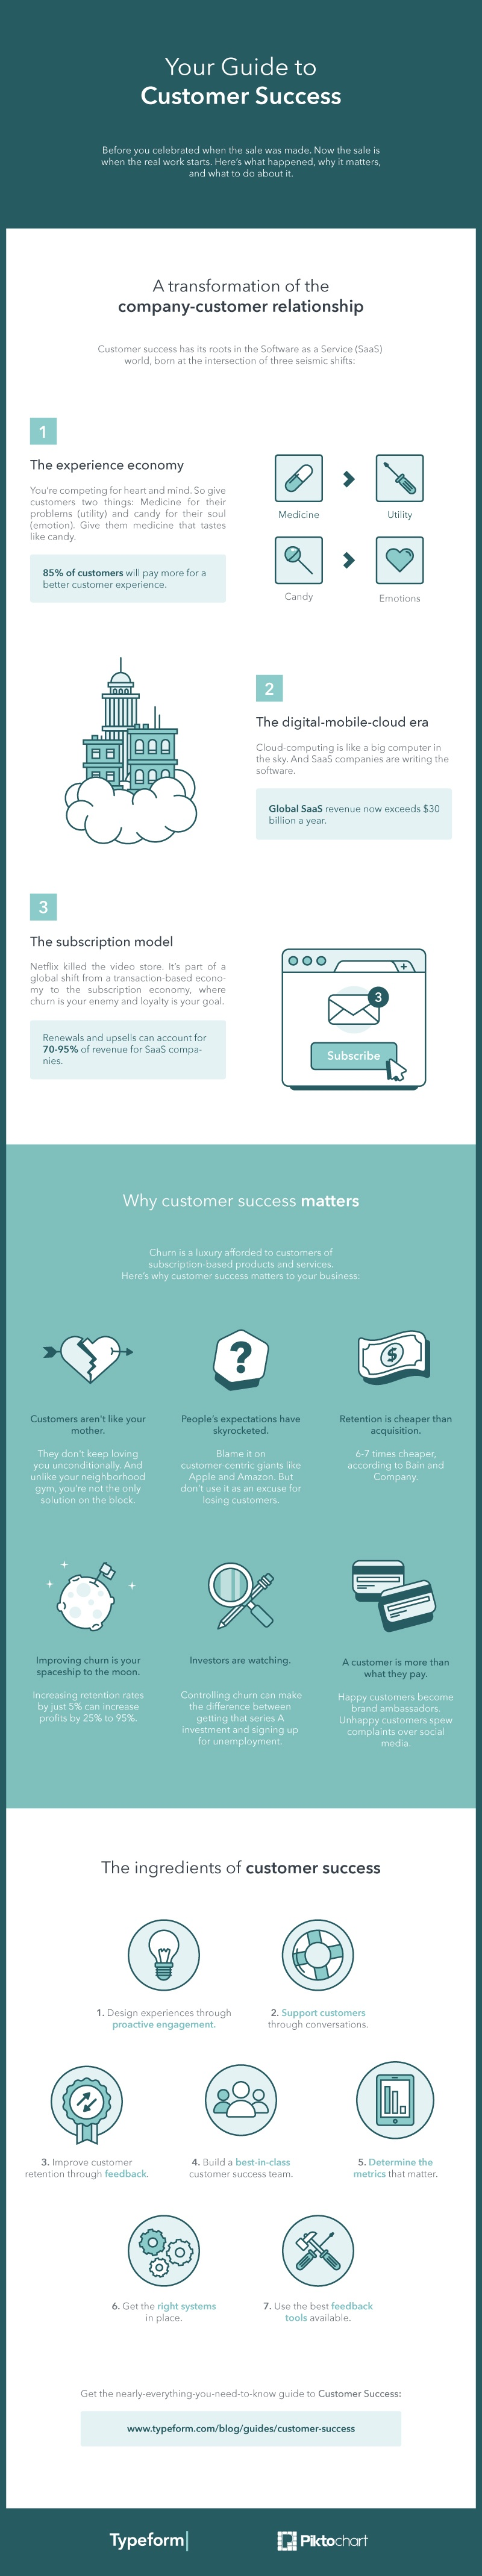 Typeform-Customer-Success-05